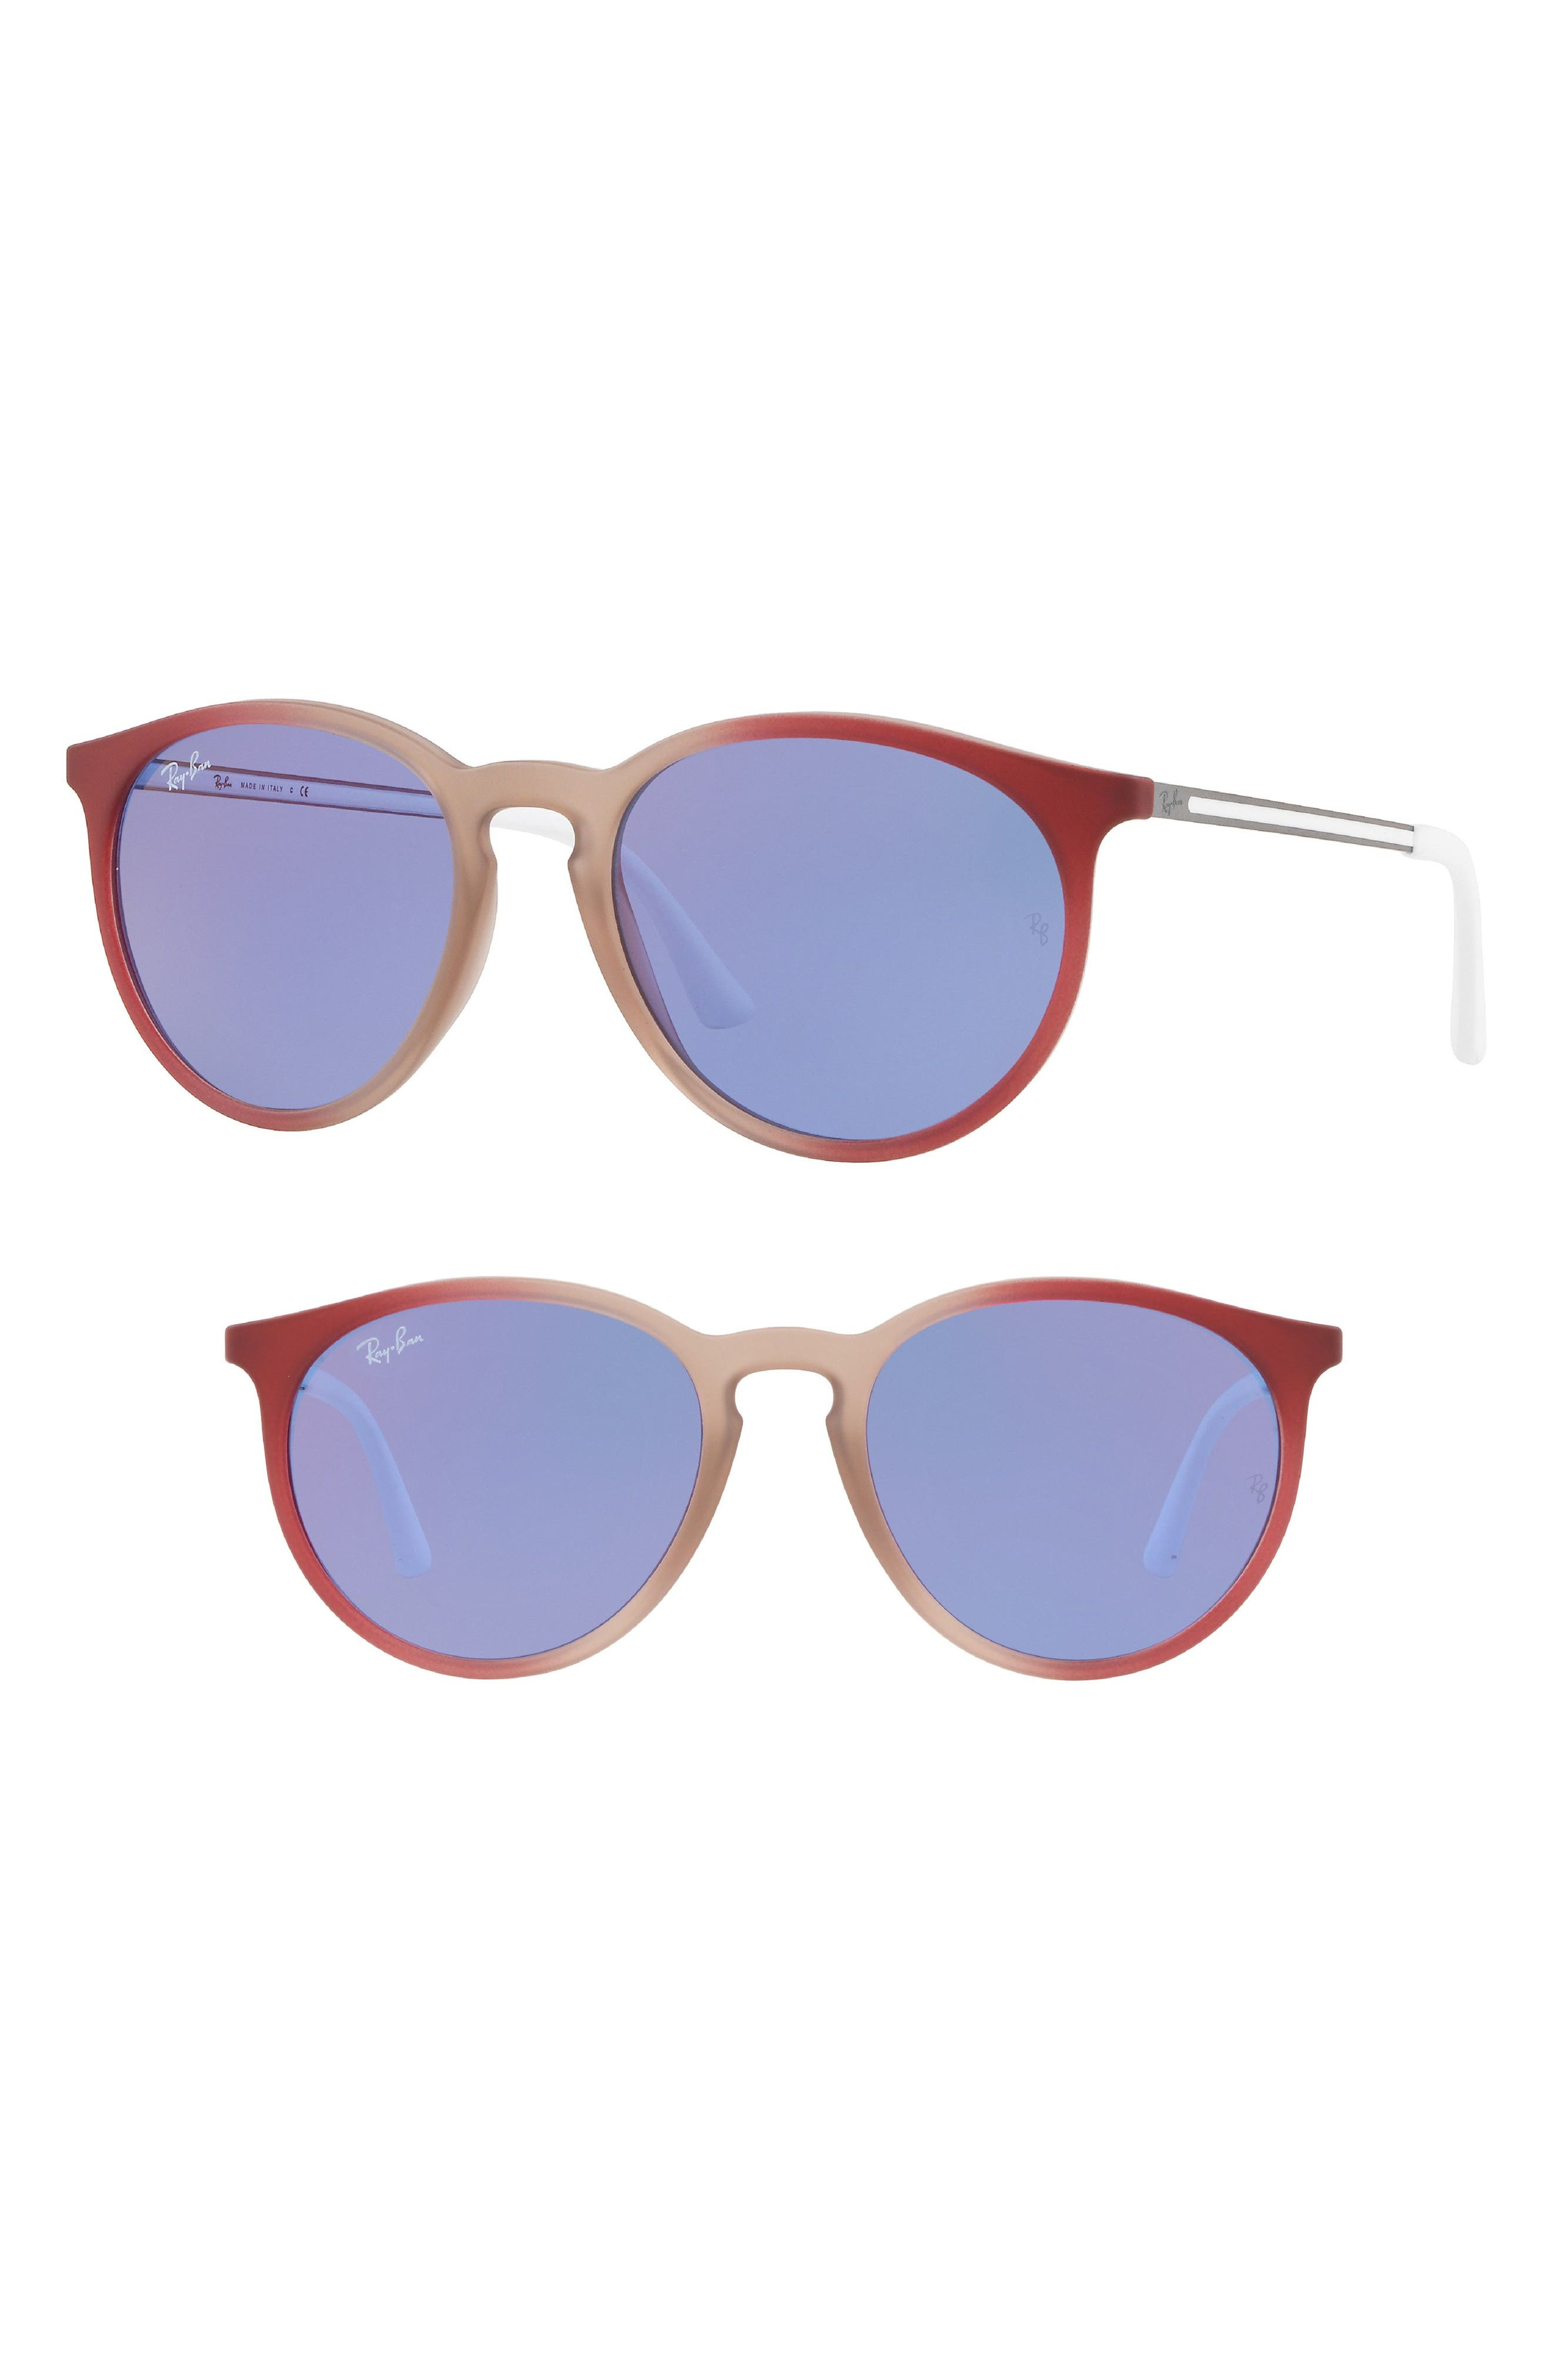 Youngster 53mm Round Sunglasses,                         Main,                         color, Purple/ Red Mirror